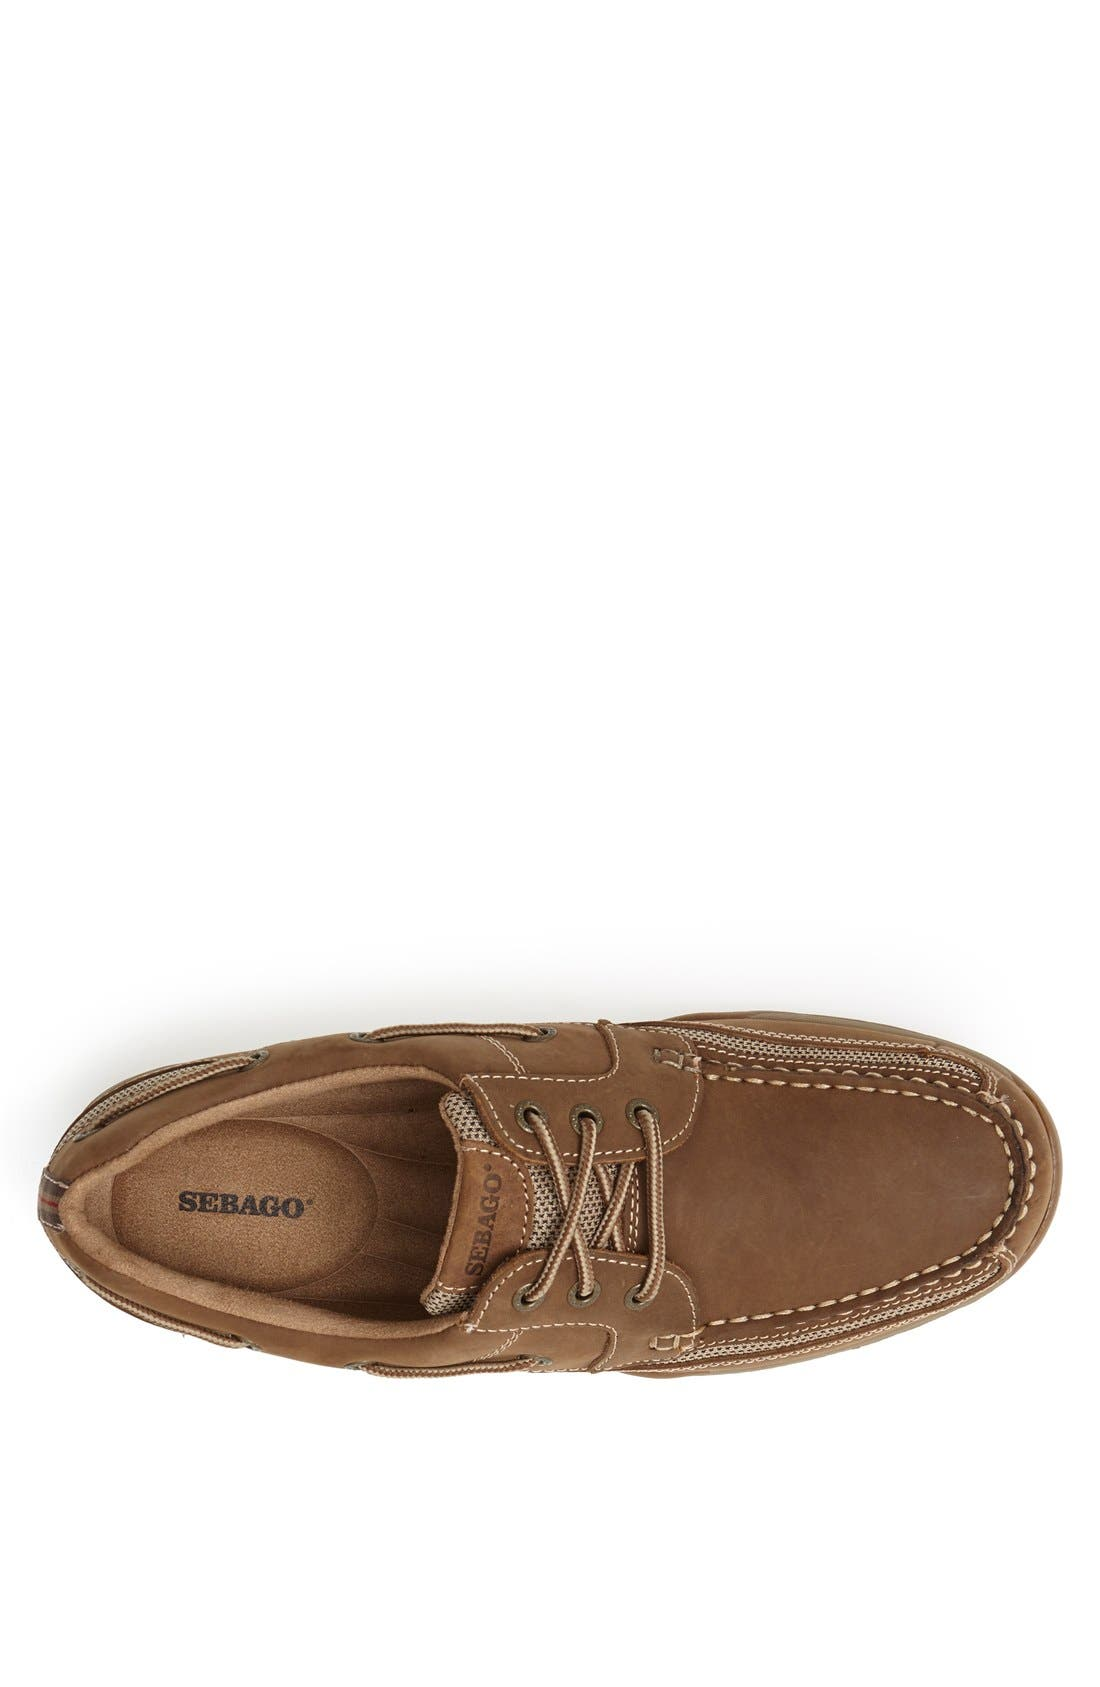 Alternate Image 3  - Sebago 'Carrick' Boat Shoe